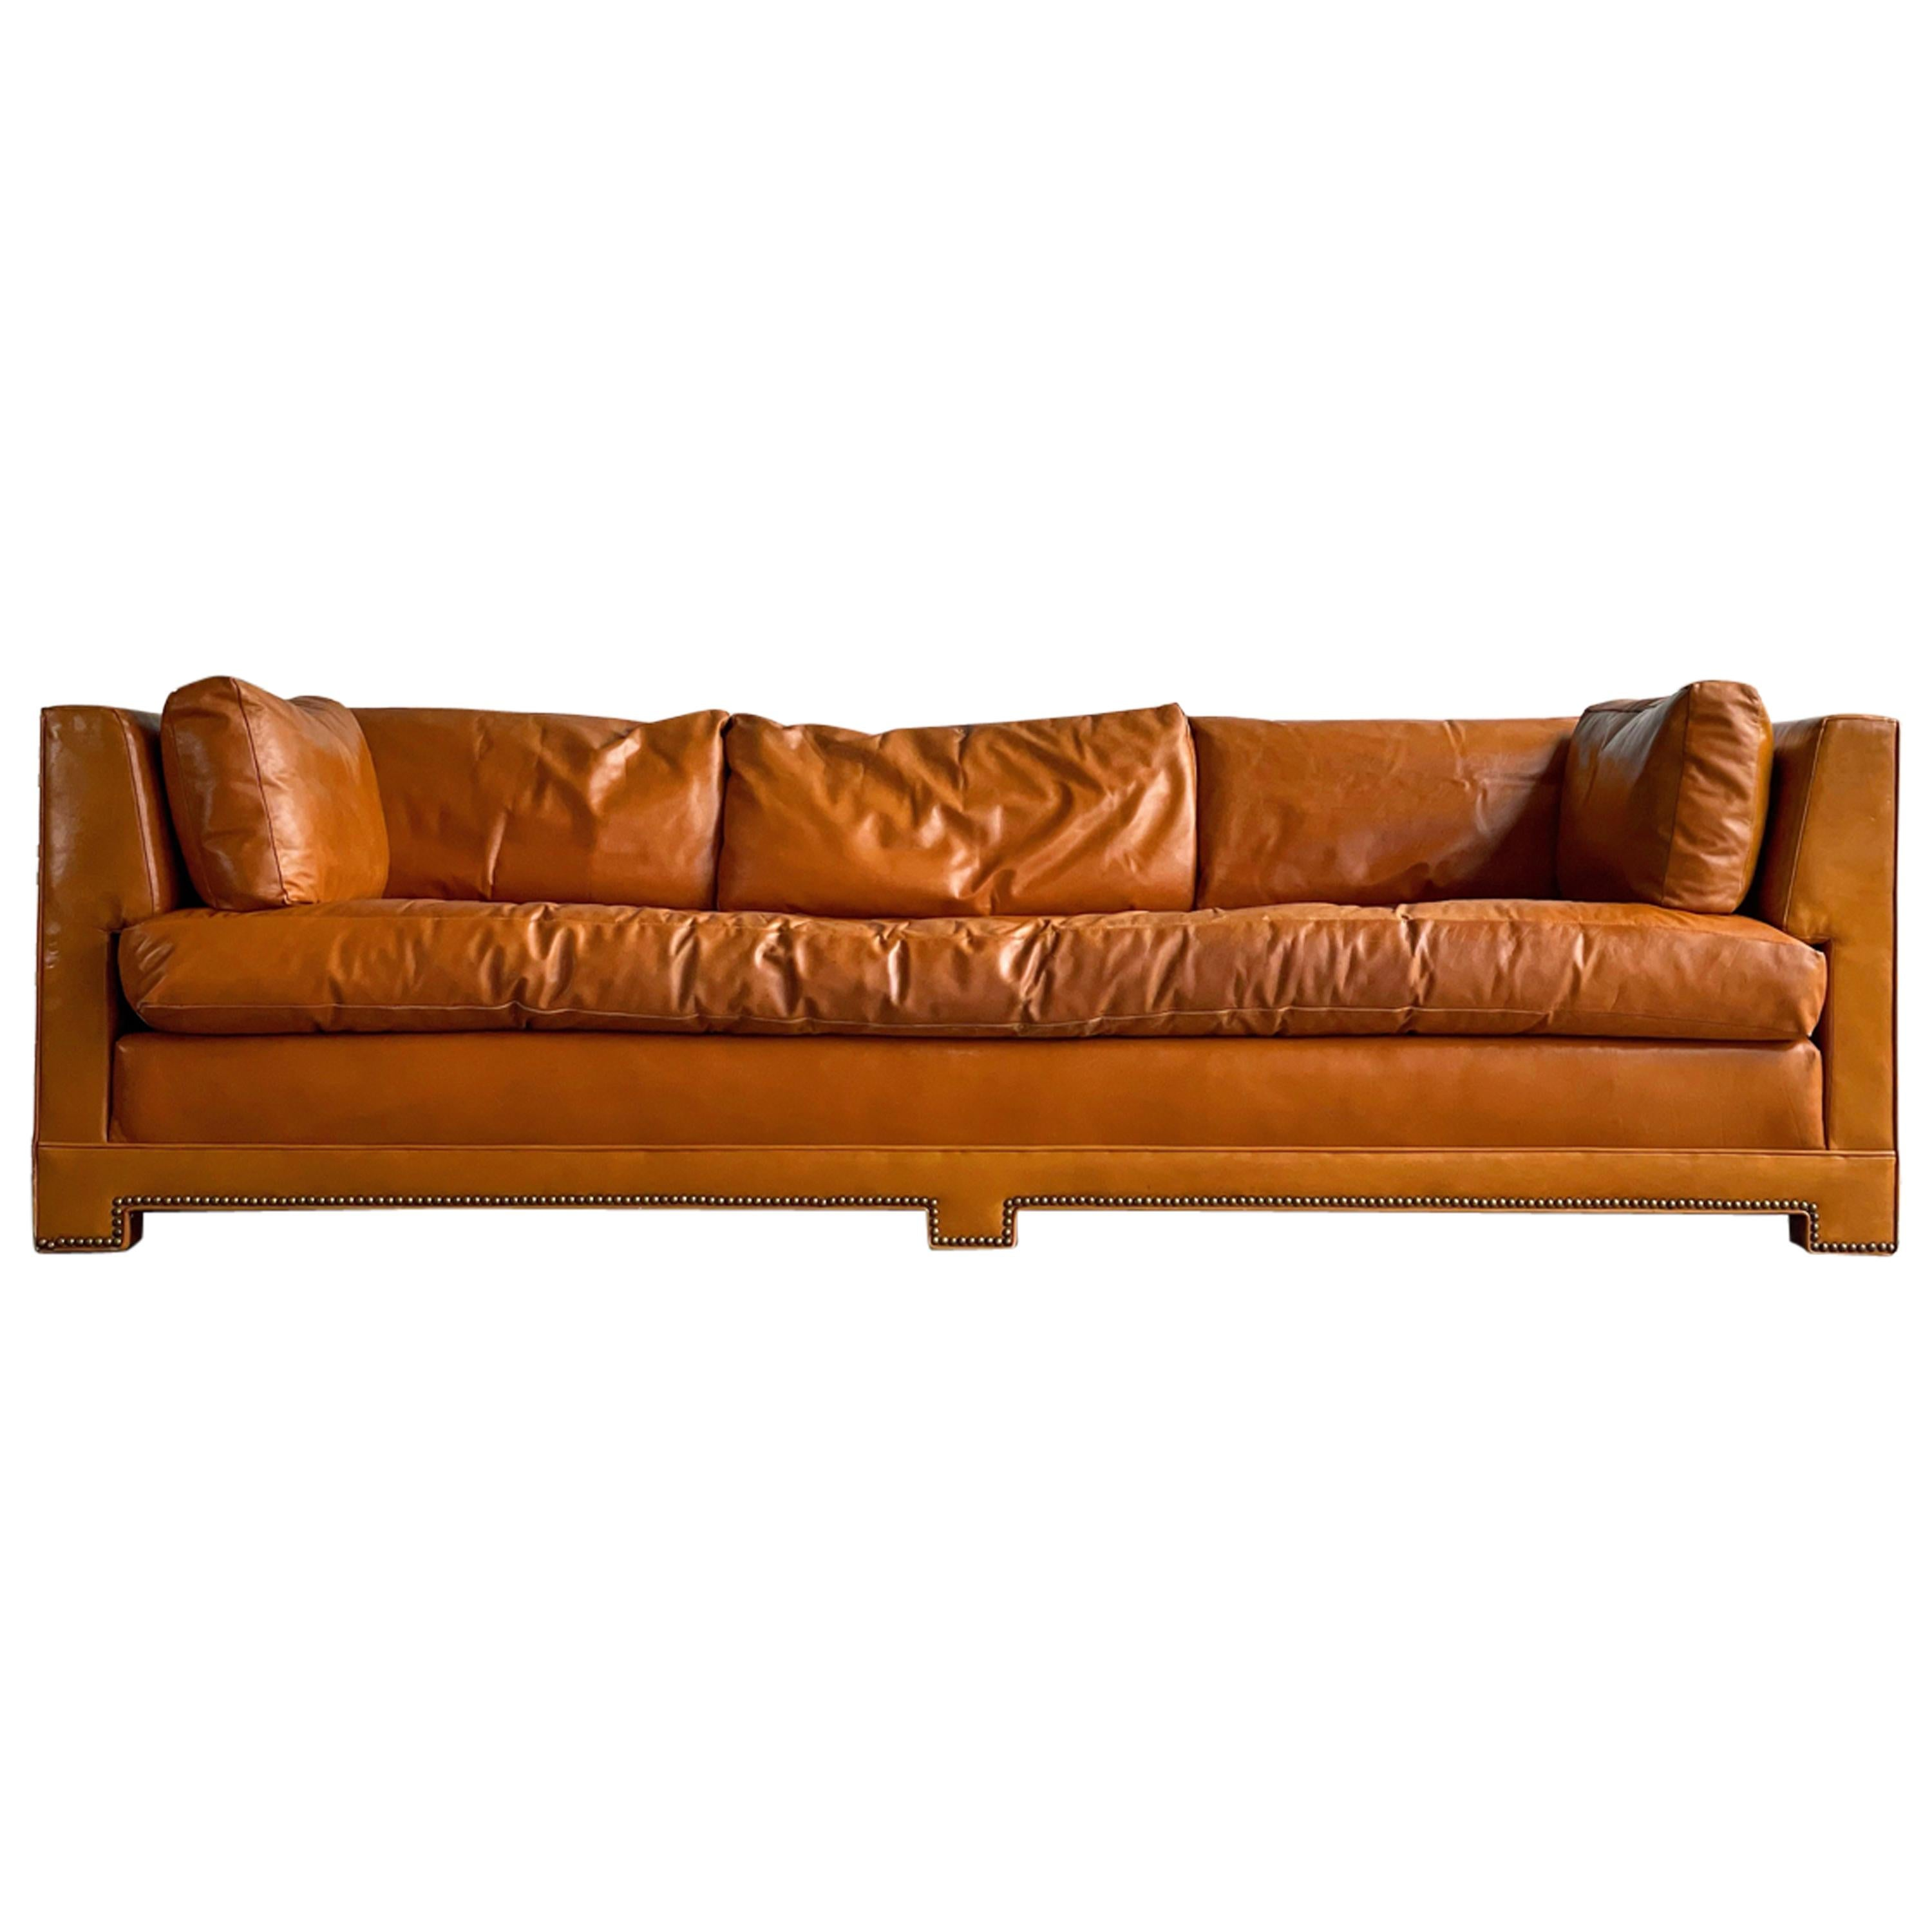 Midcentury Parsons Sofa by John Widdicomb in Original Cognac Leather and Down